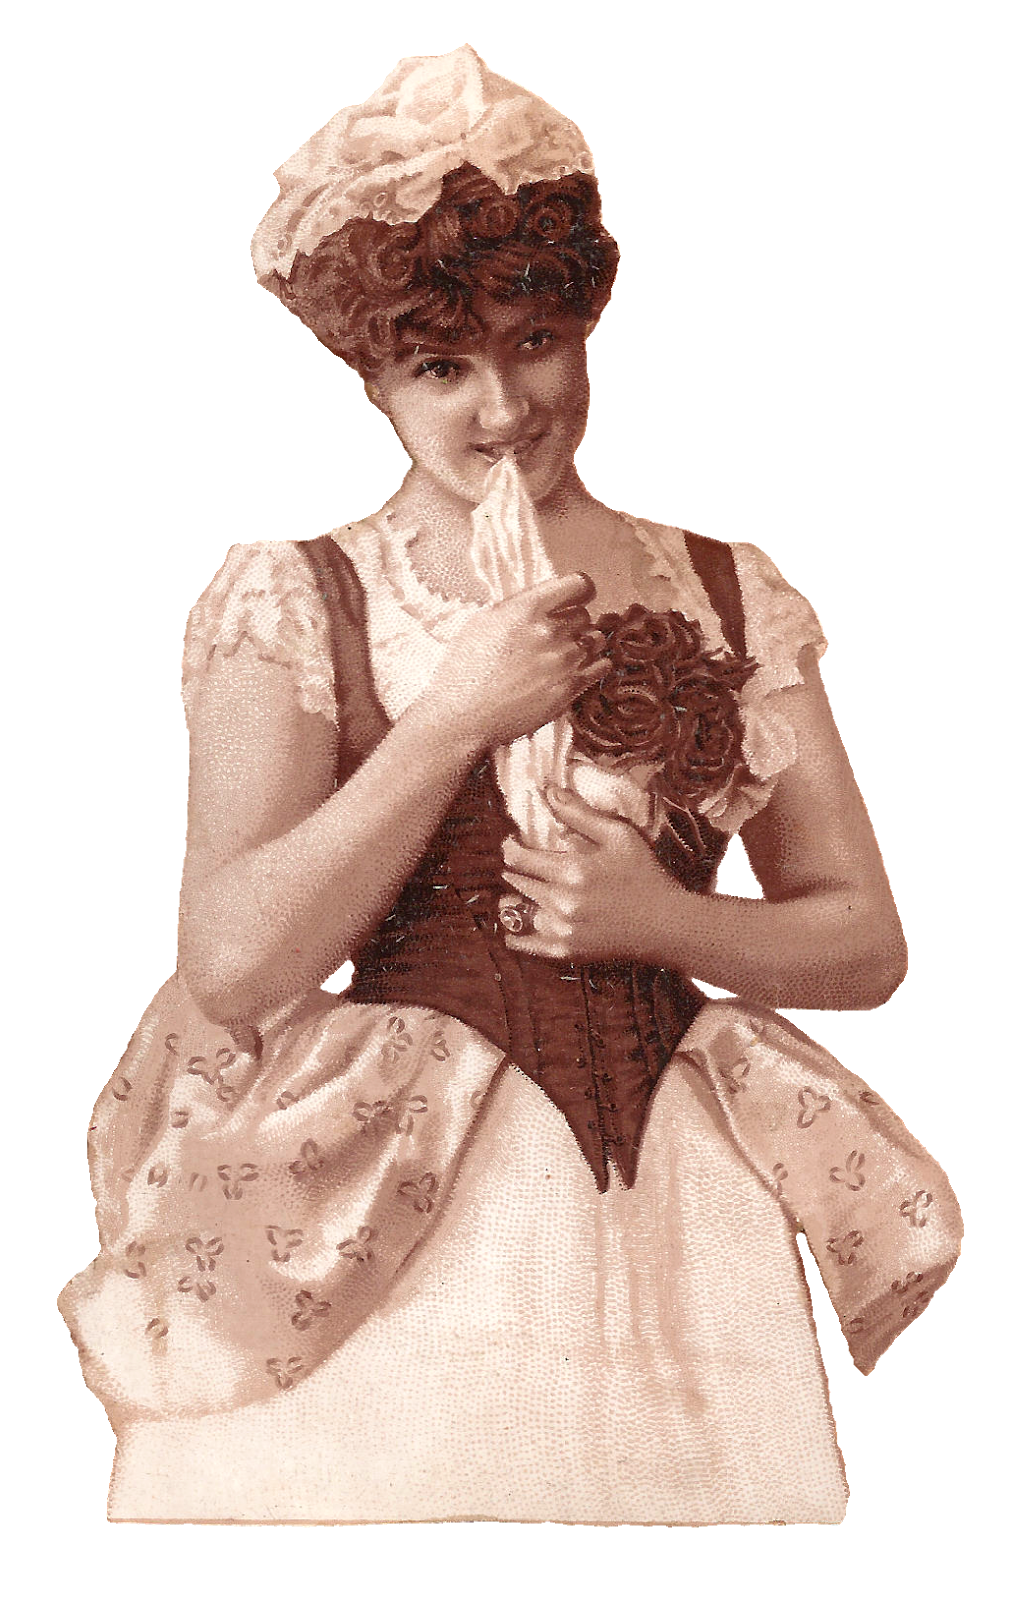 Fashion clipart hollywood vintage. Antique images stock women